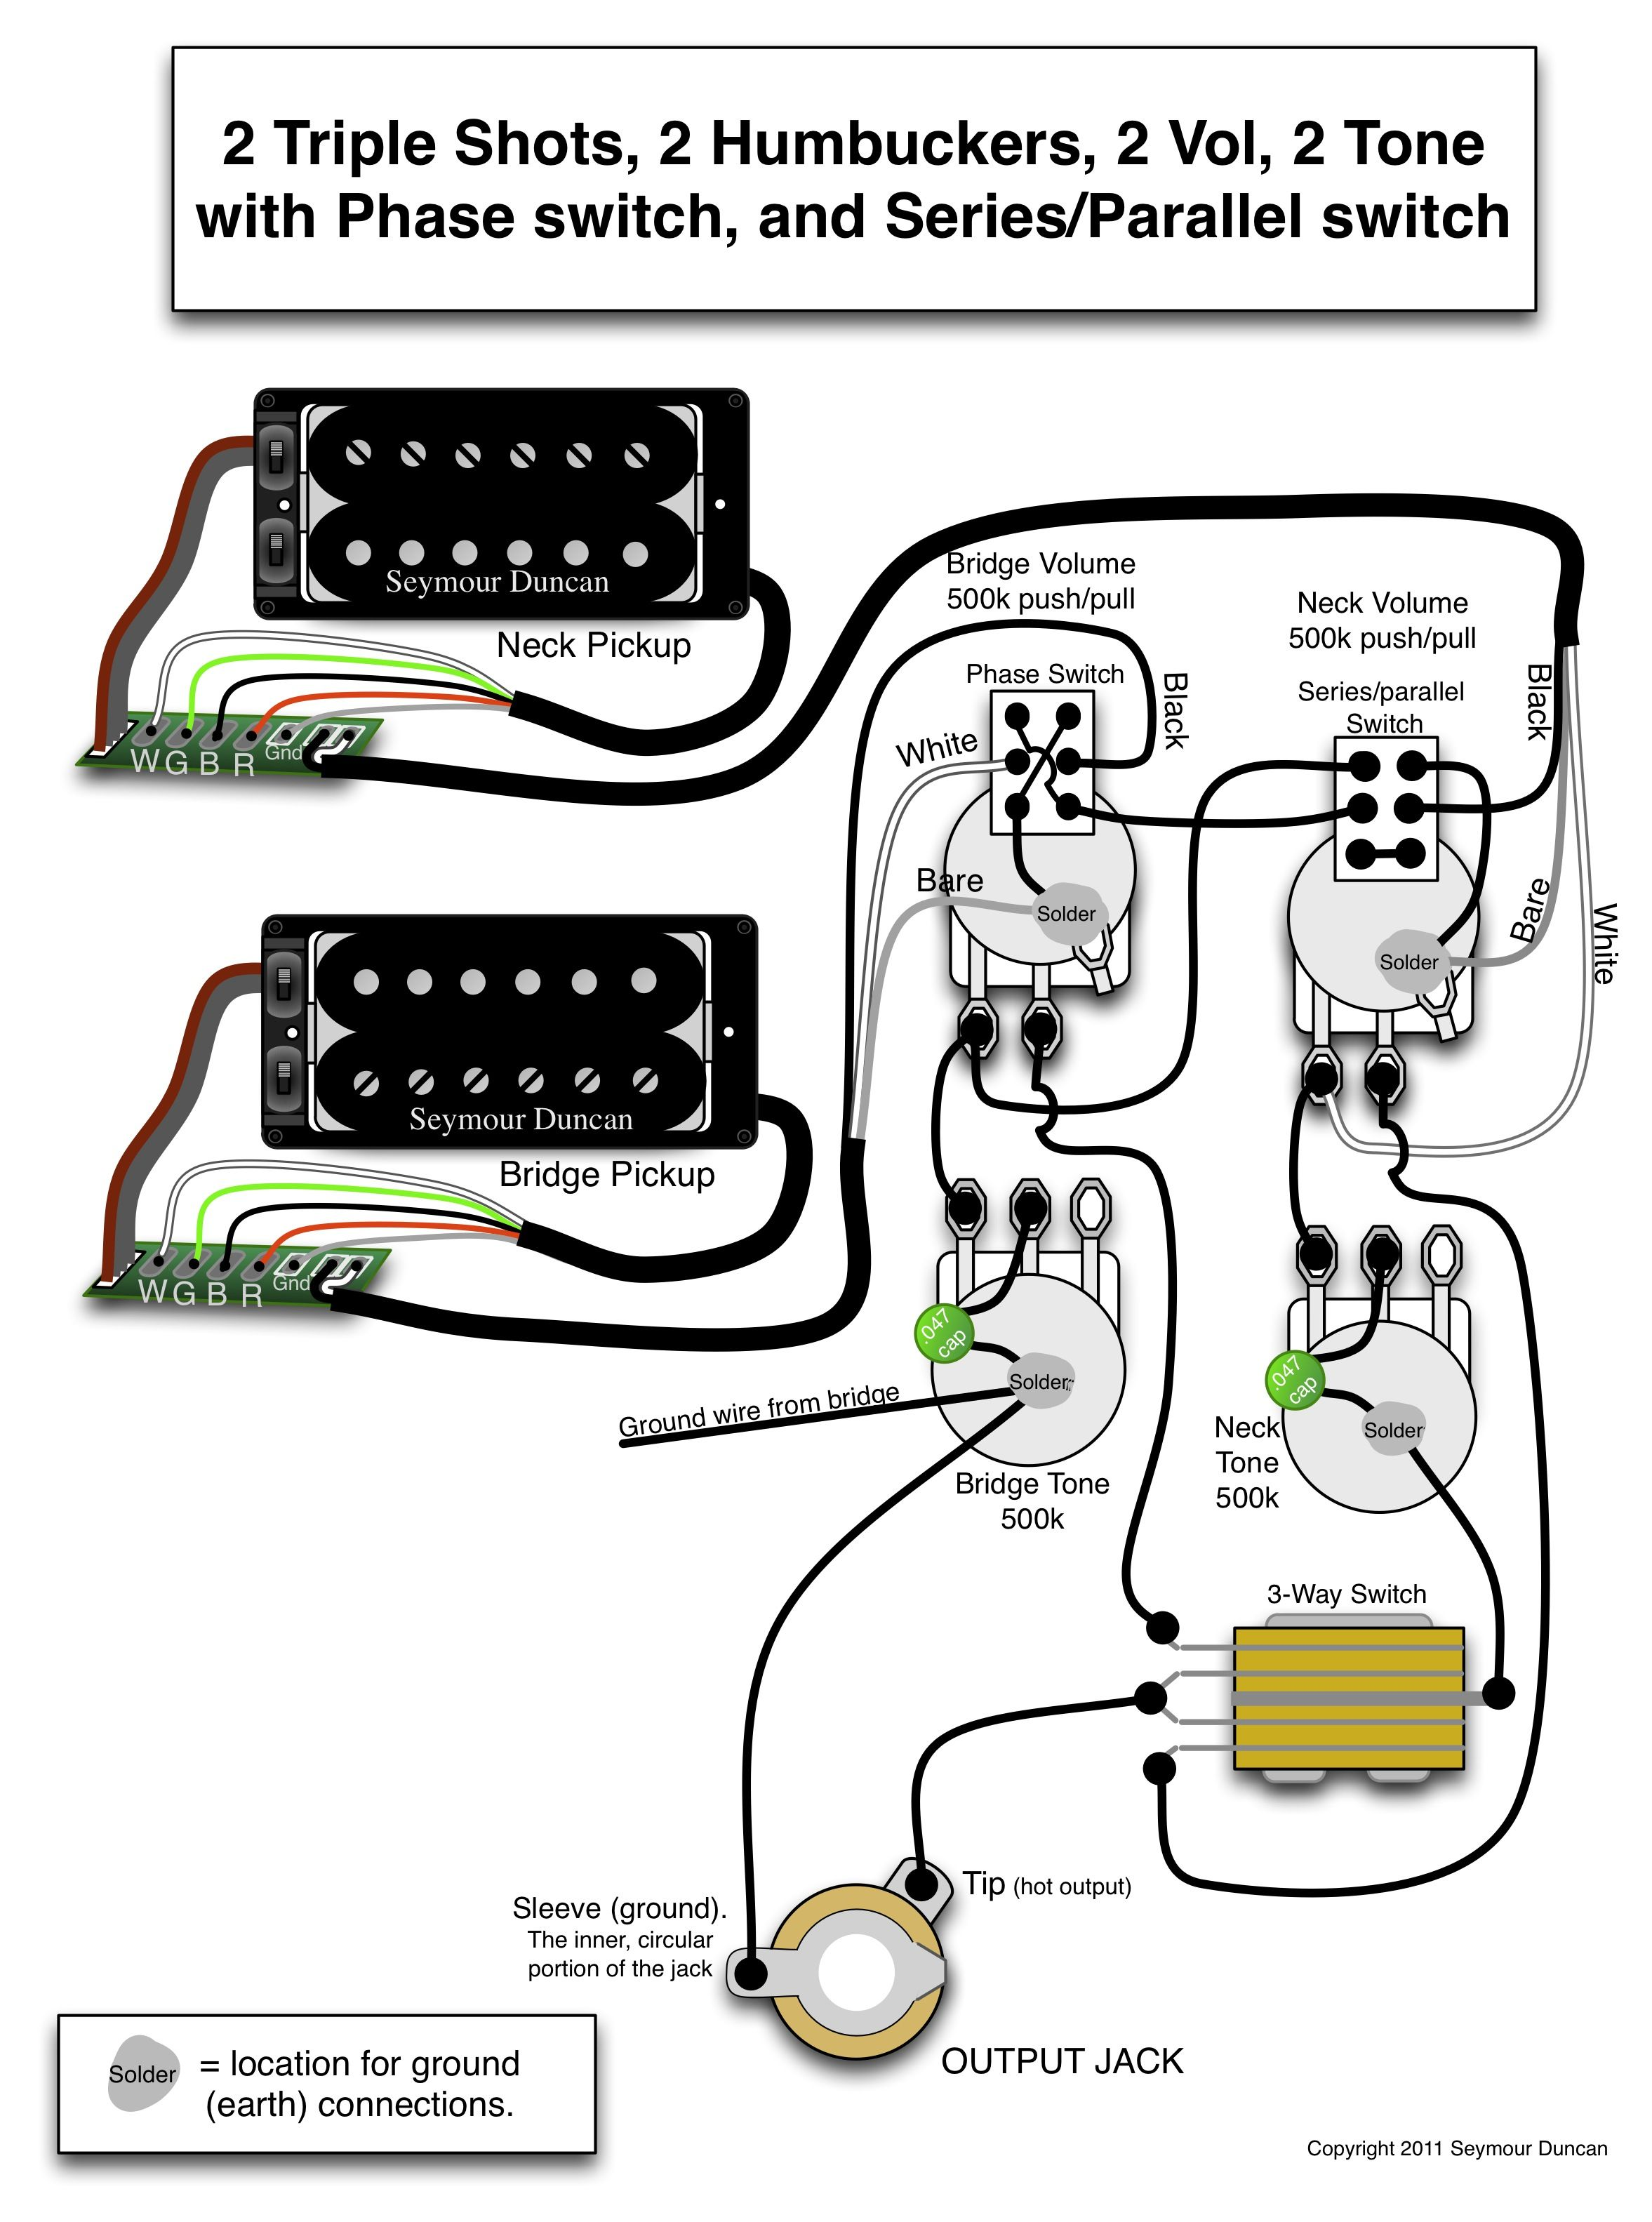 14dc4408abcf3c075a00cd280c1ea7ec seymour duncan wiring diagram 2 triple shots, 2 humbuckers, 2  at honlapkeszites.co